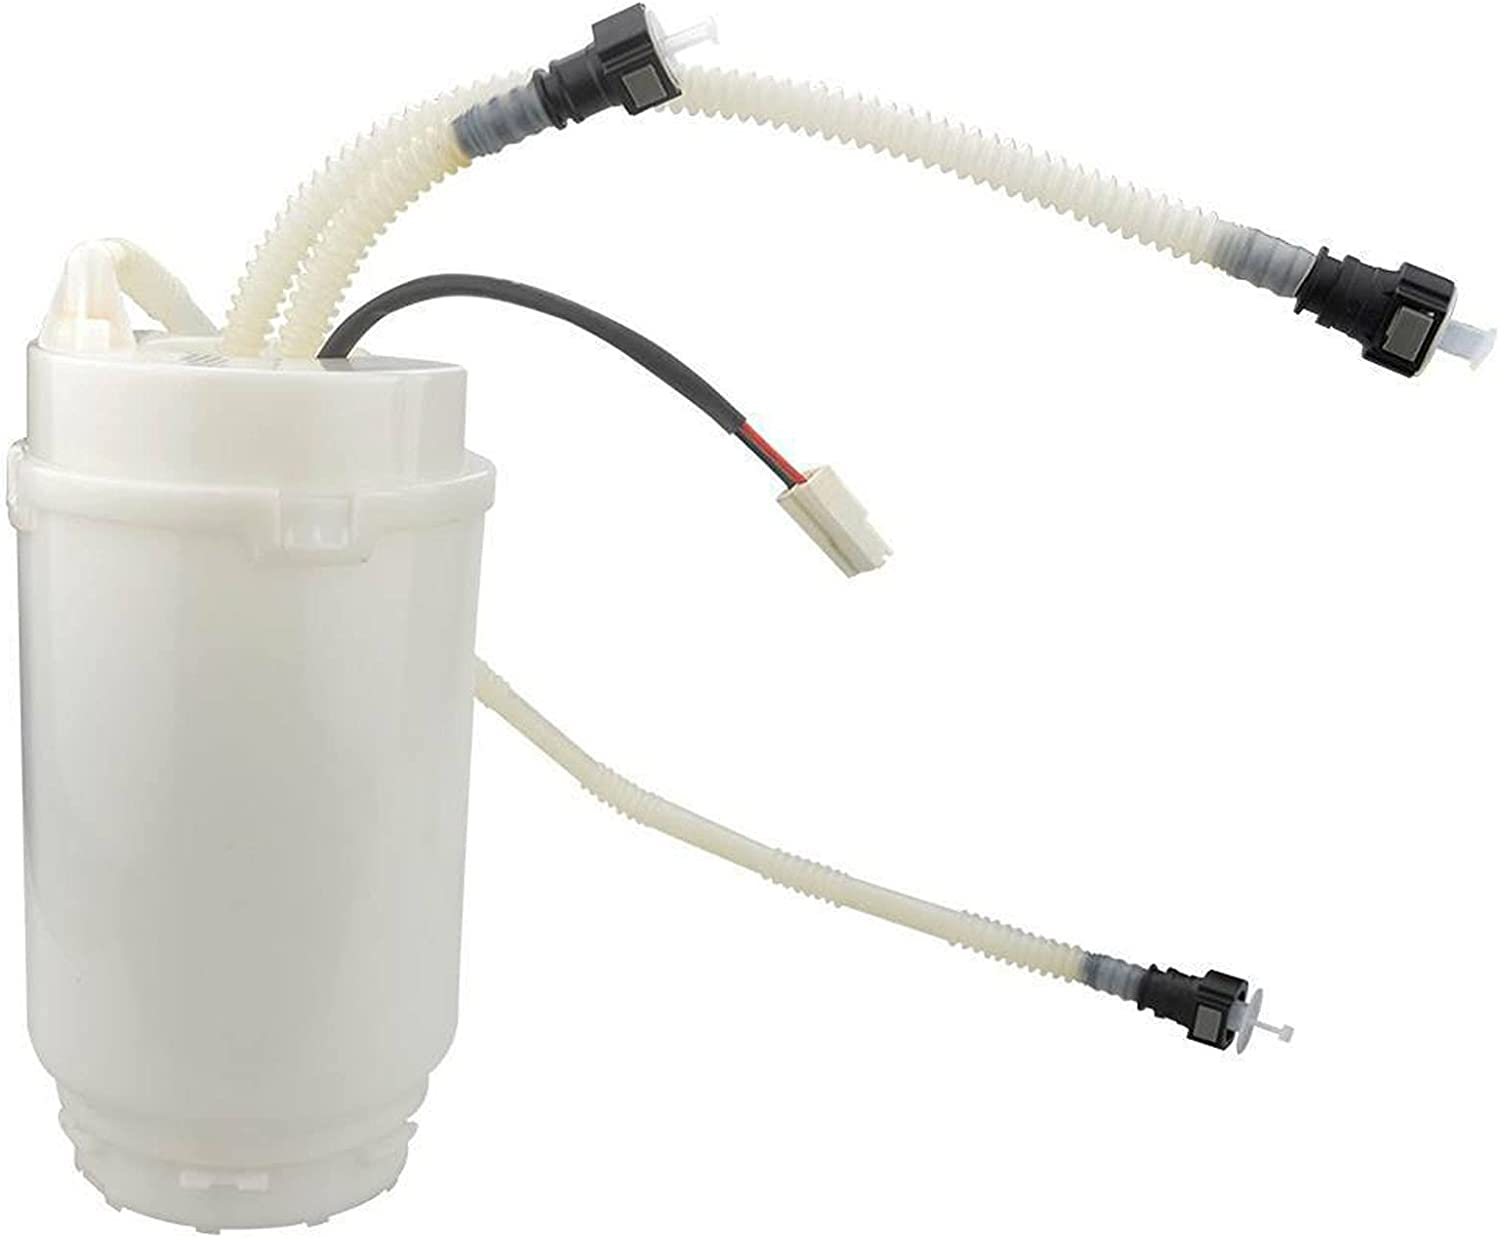 Hconcet Fuel Pump Assembly Compatible Touareg Volkswagen 20 safety Outlet SALE with